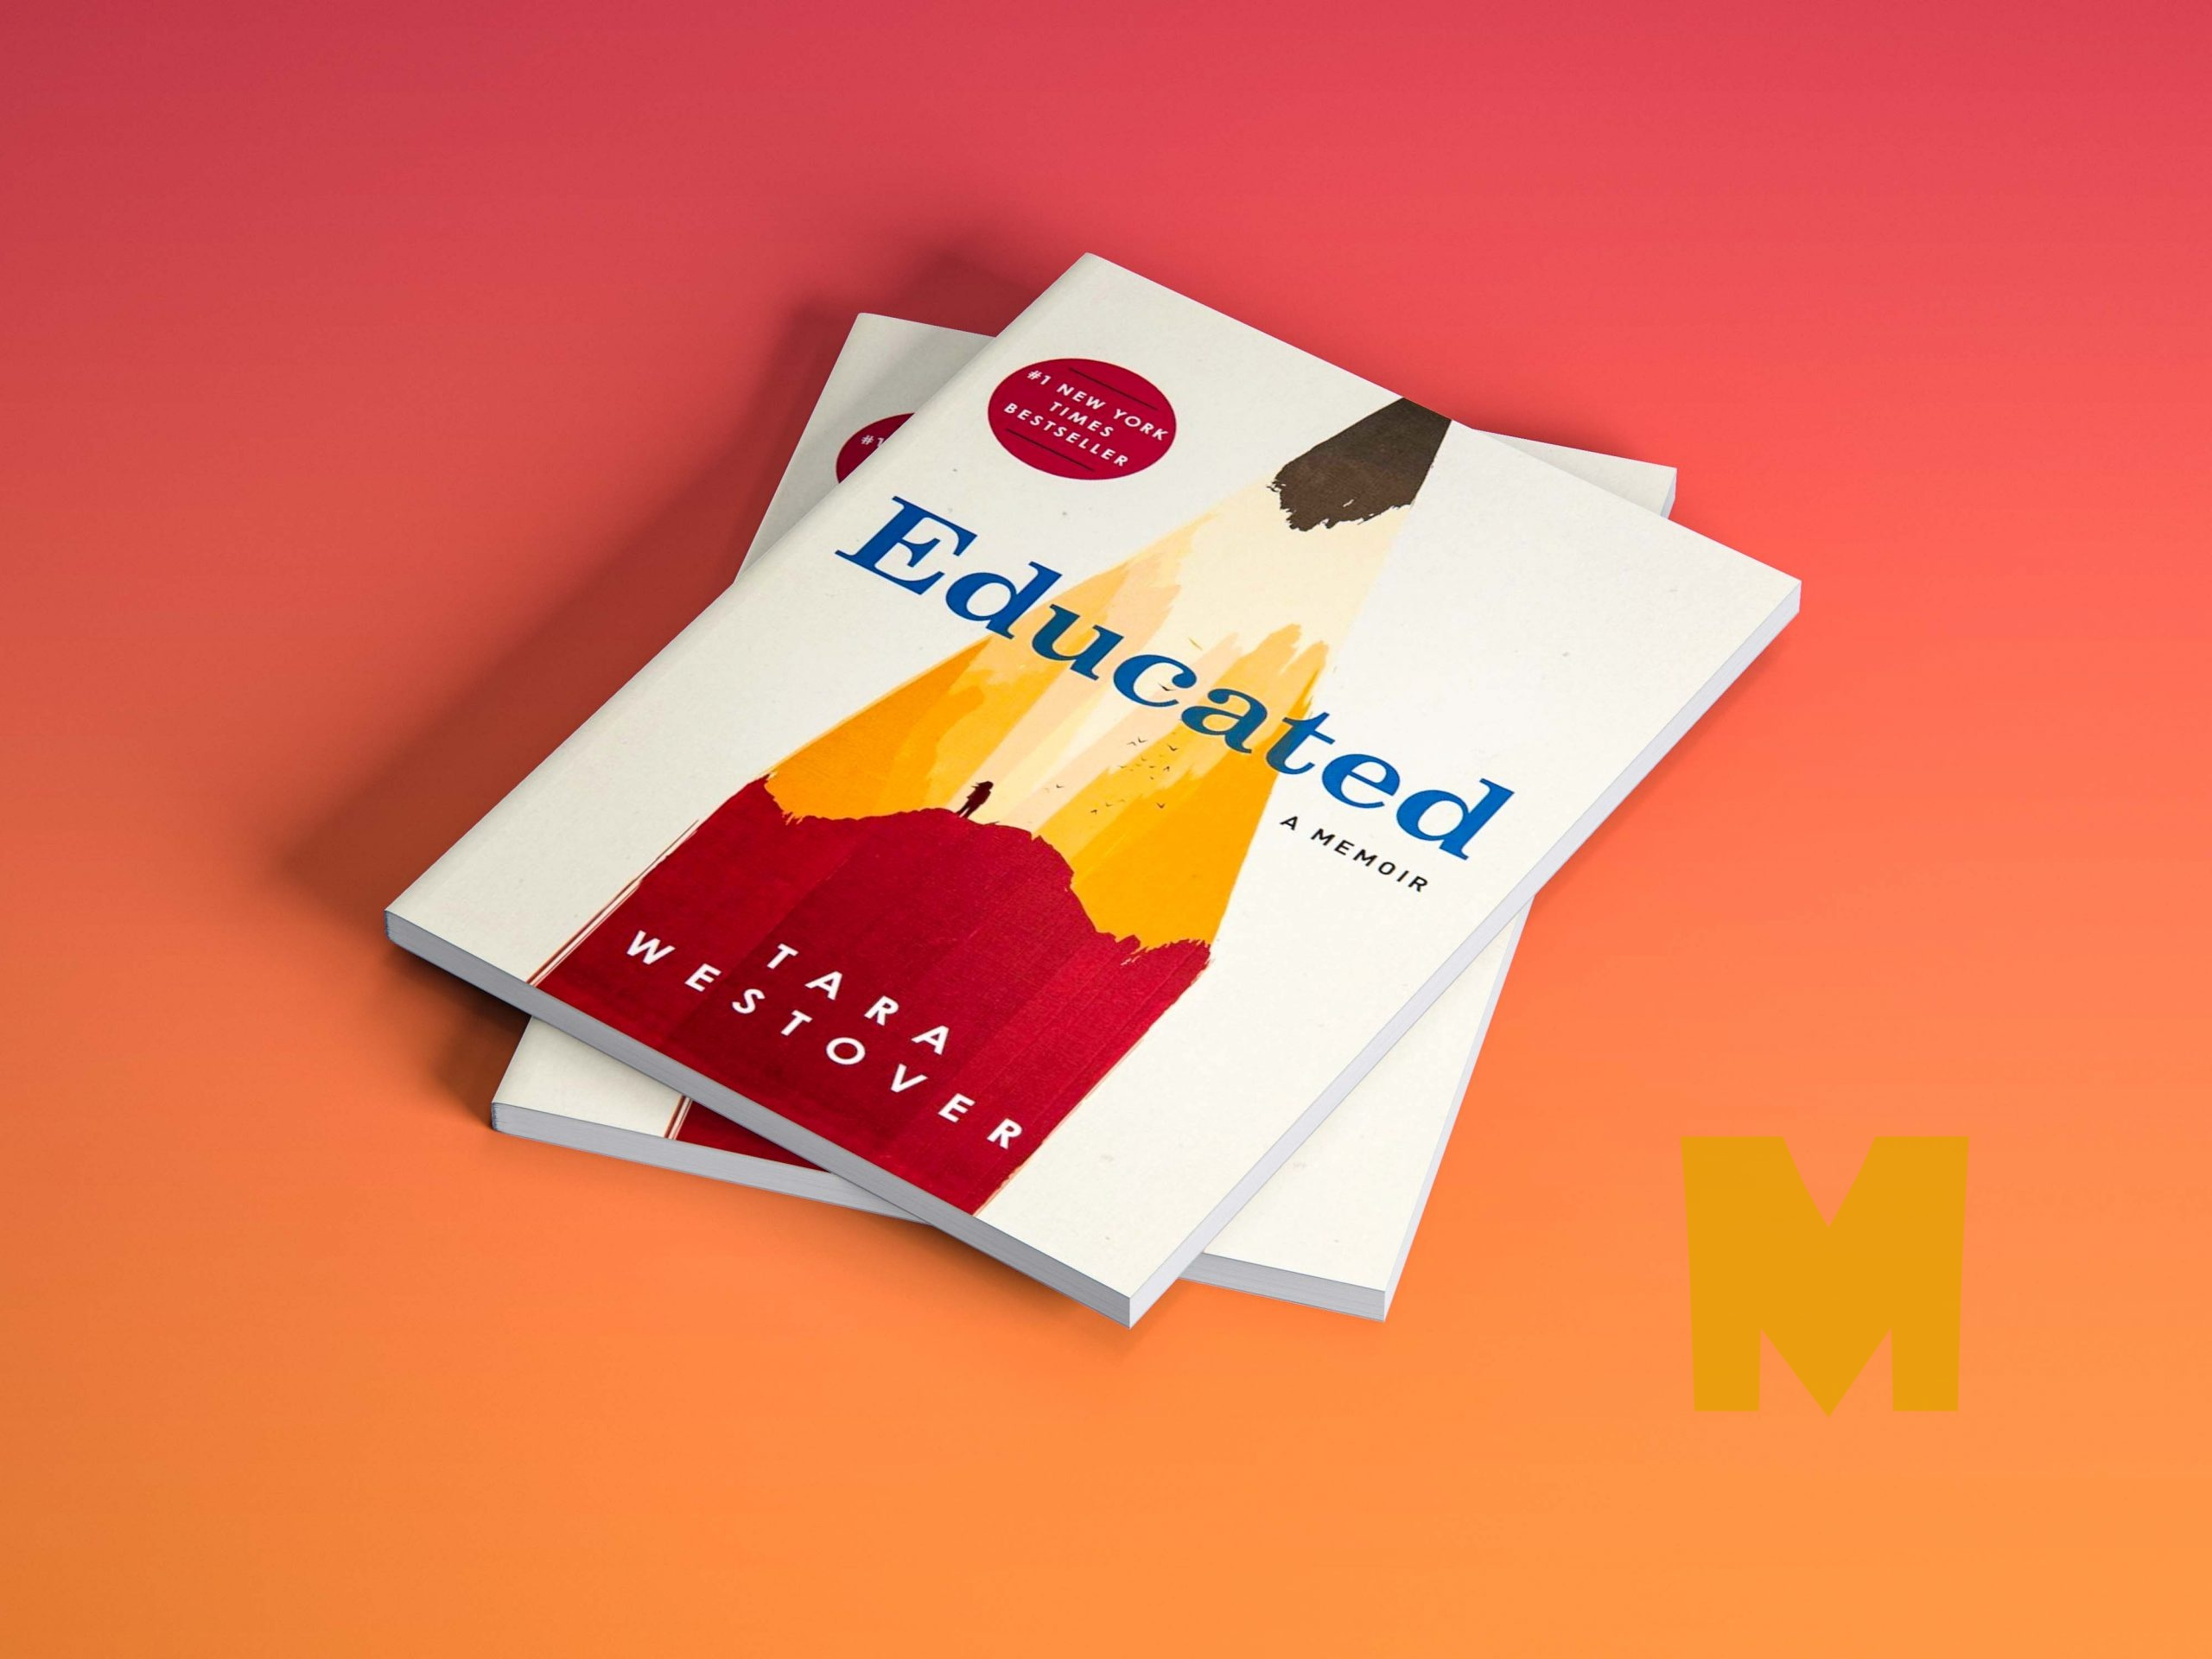 Free Paper Cool Book Cover Mockup